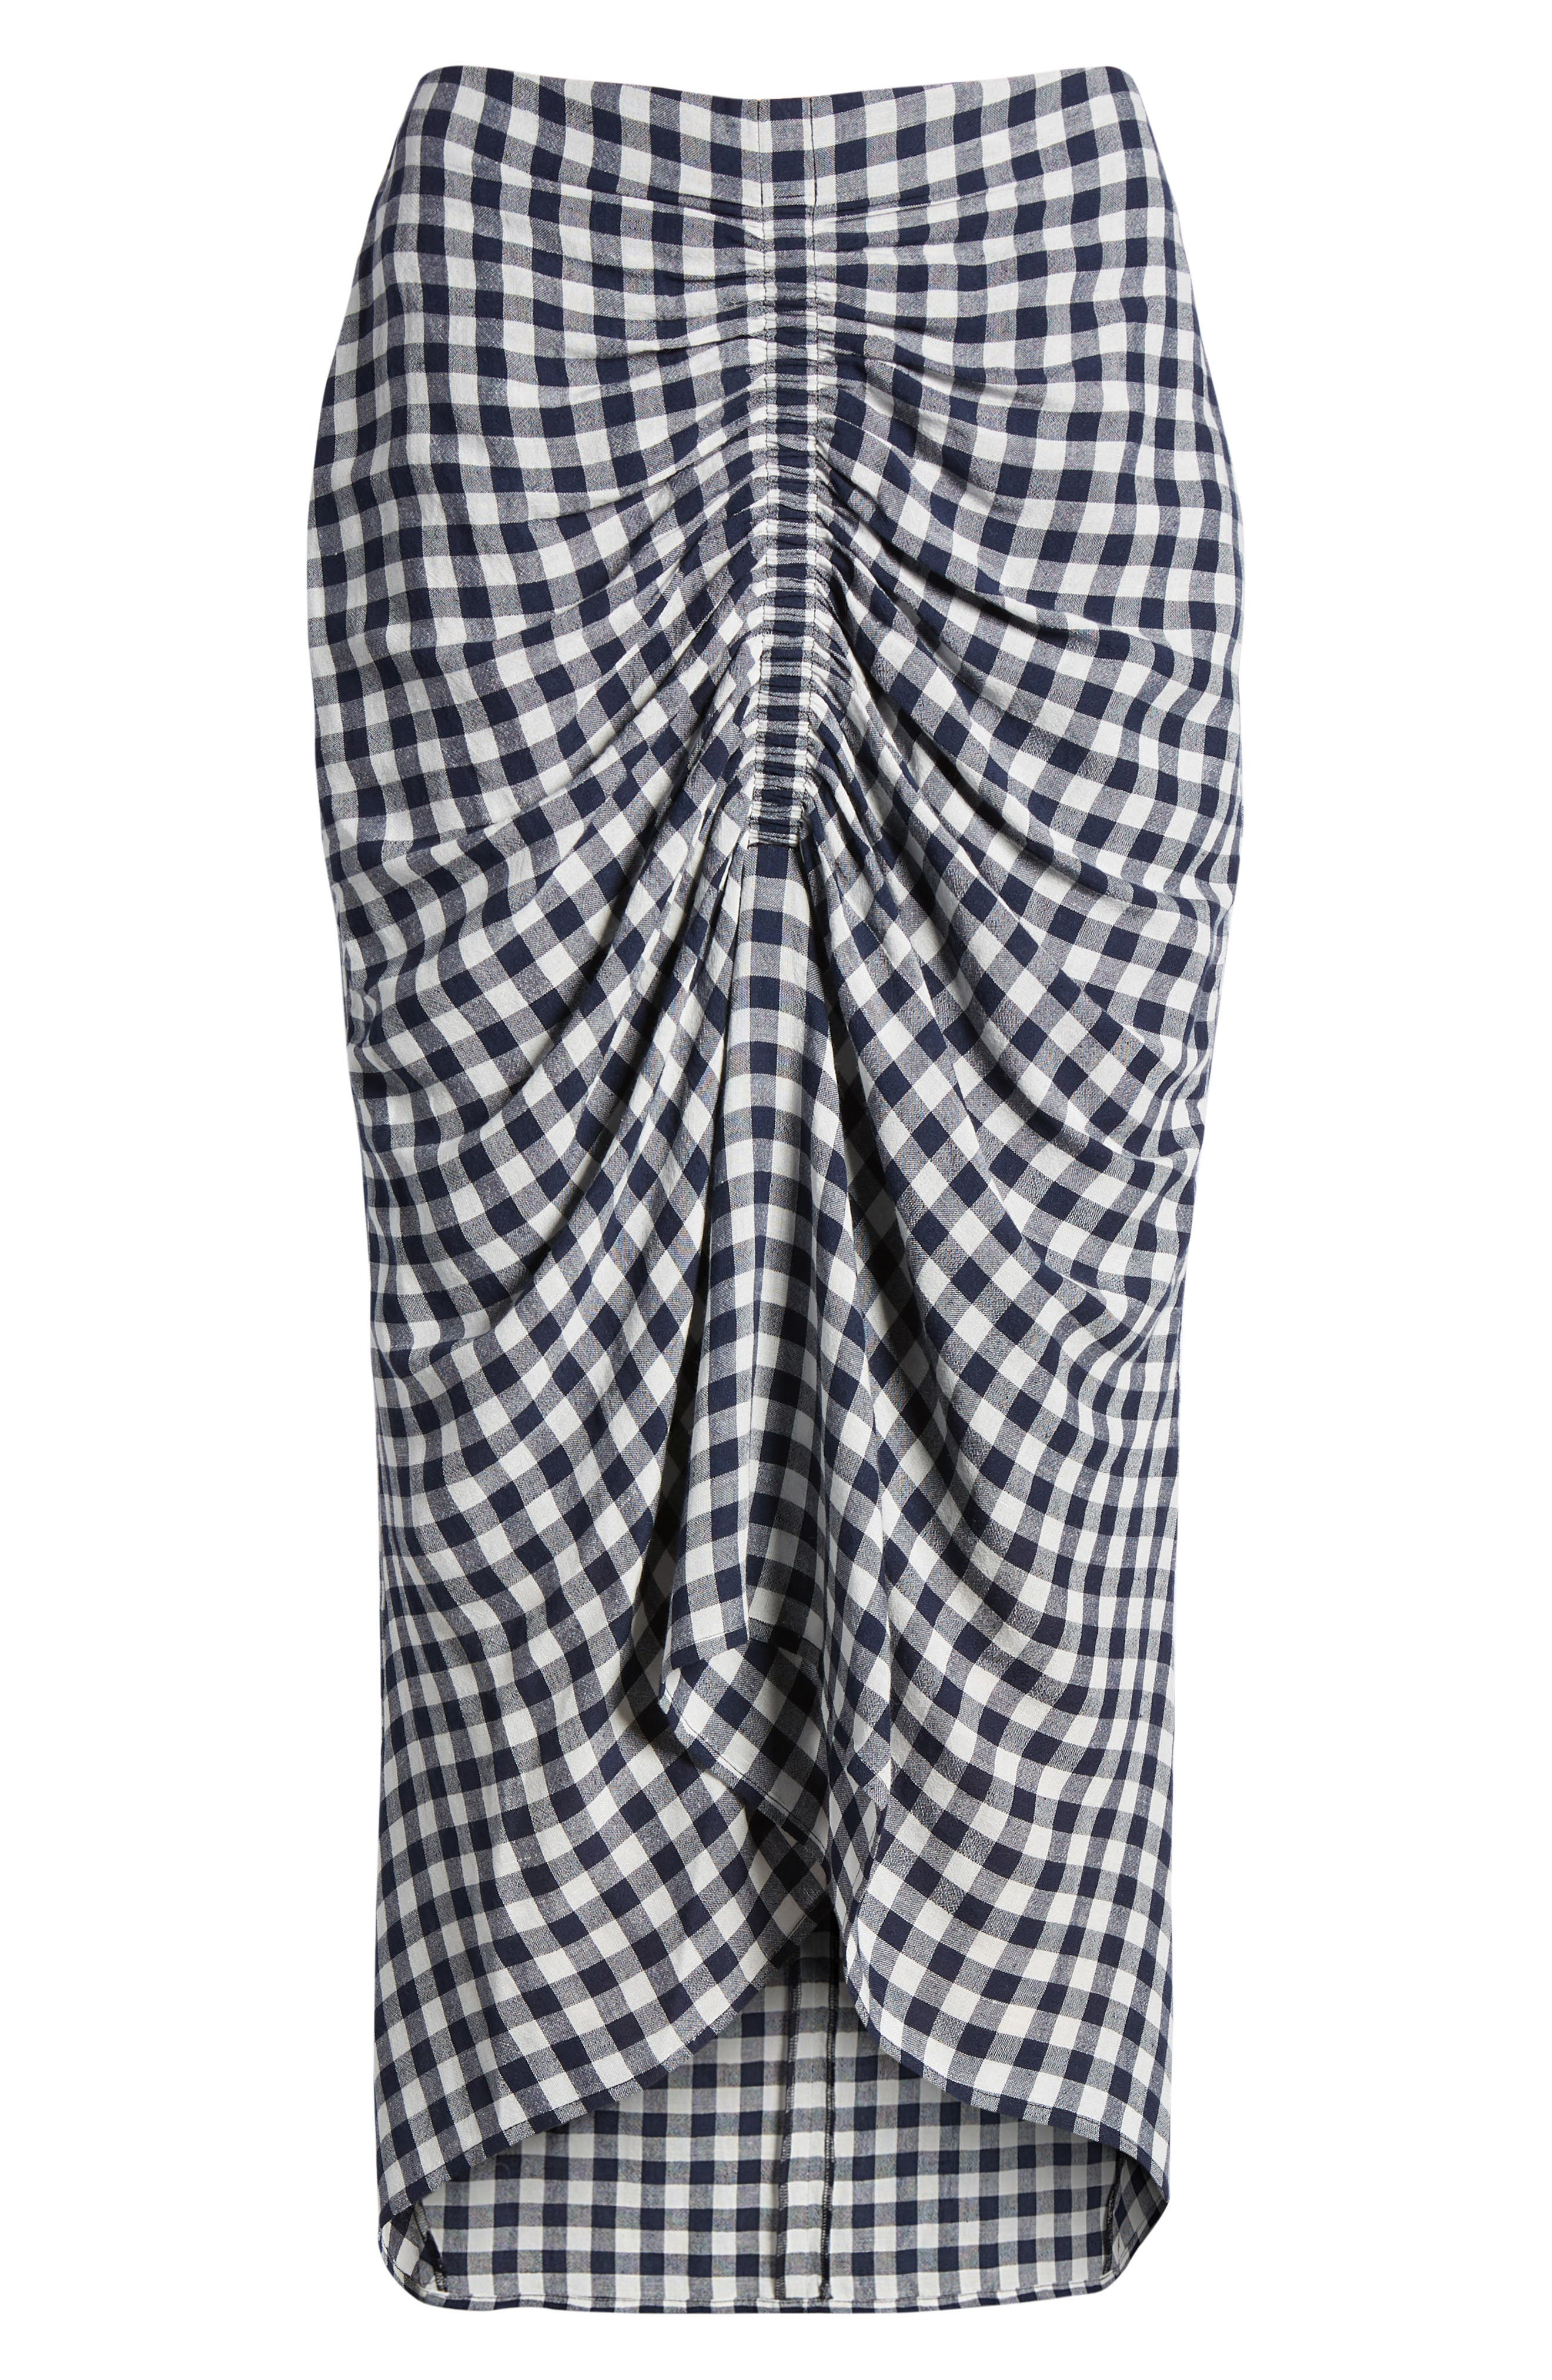 Ruched Front Gingham Skirt,                             Alternate thumbnail 6, color,                             NAVY NIGHT- WHITE CHECK